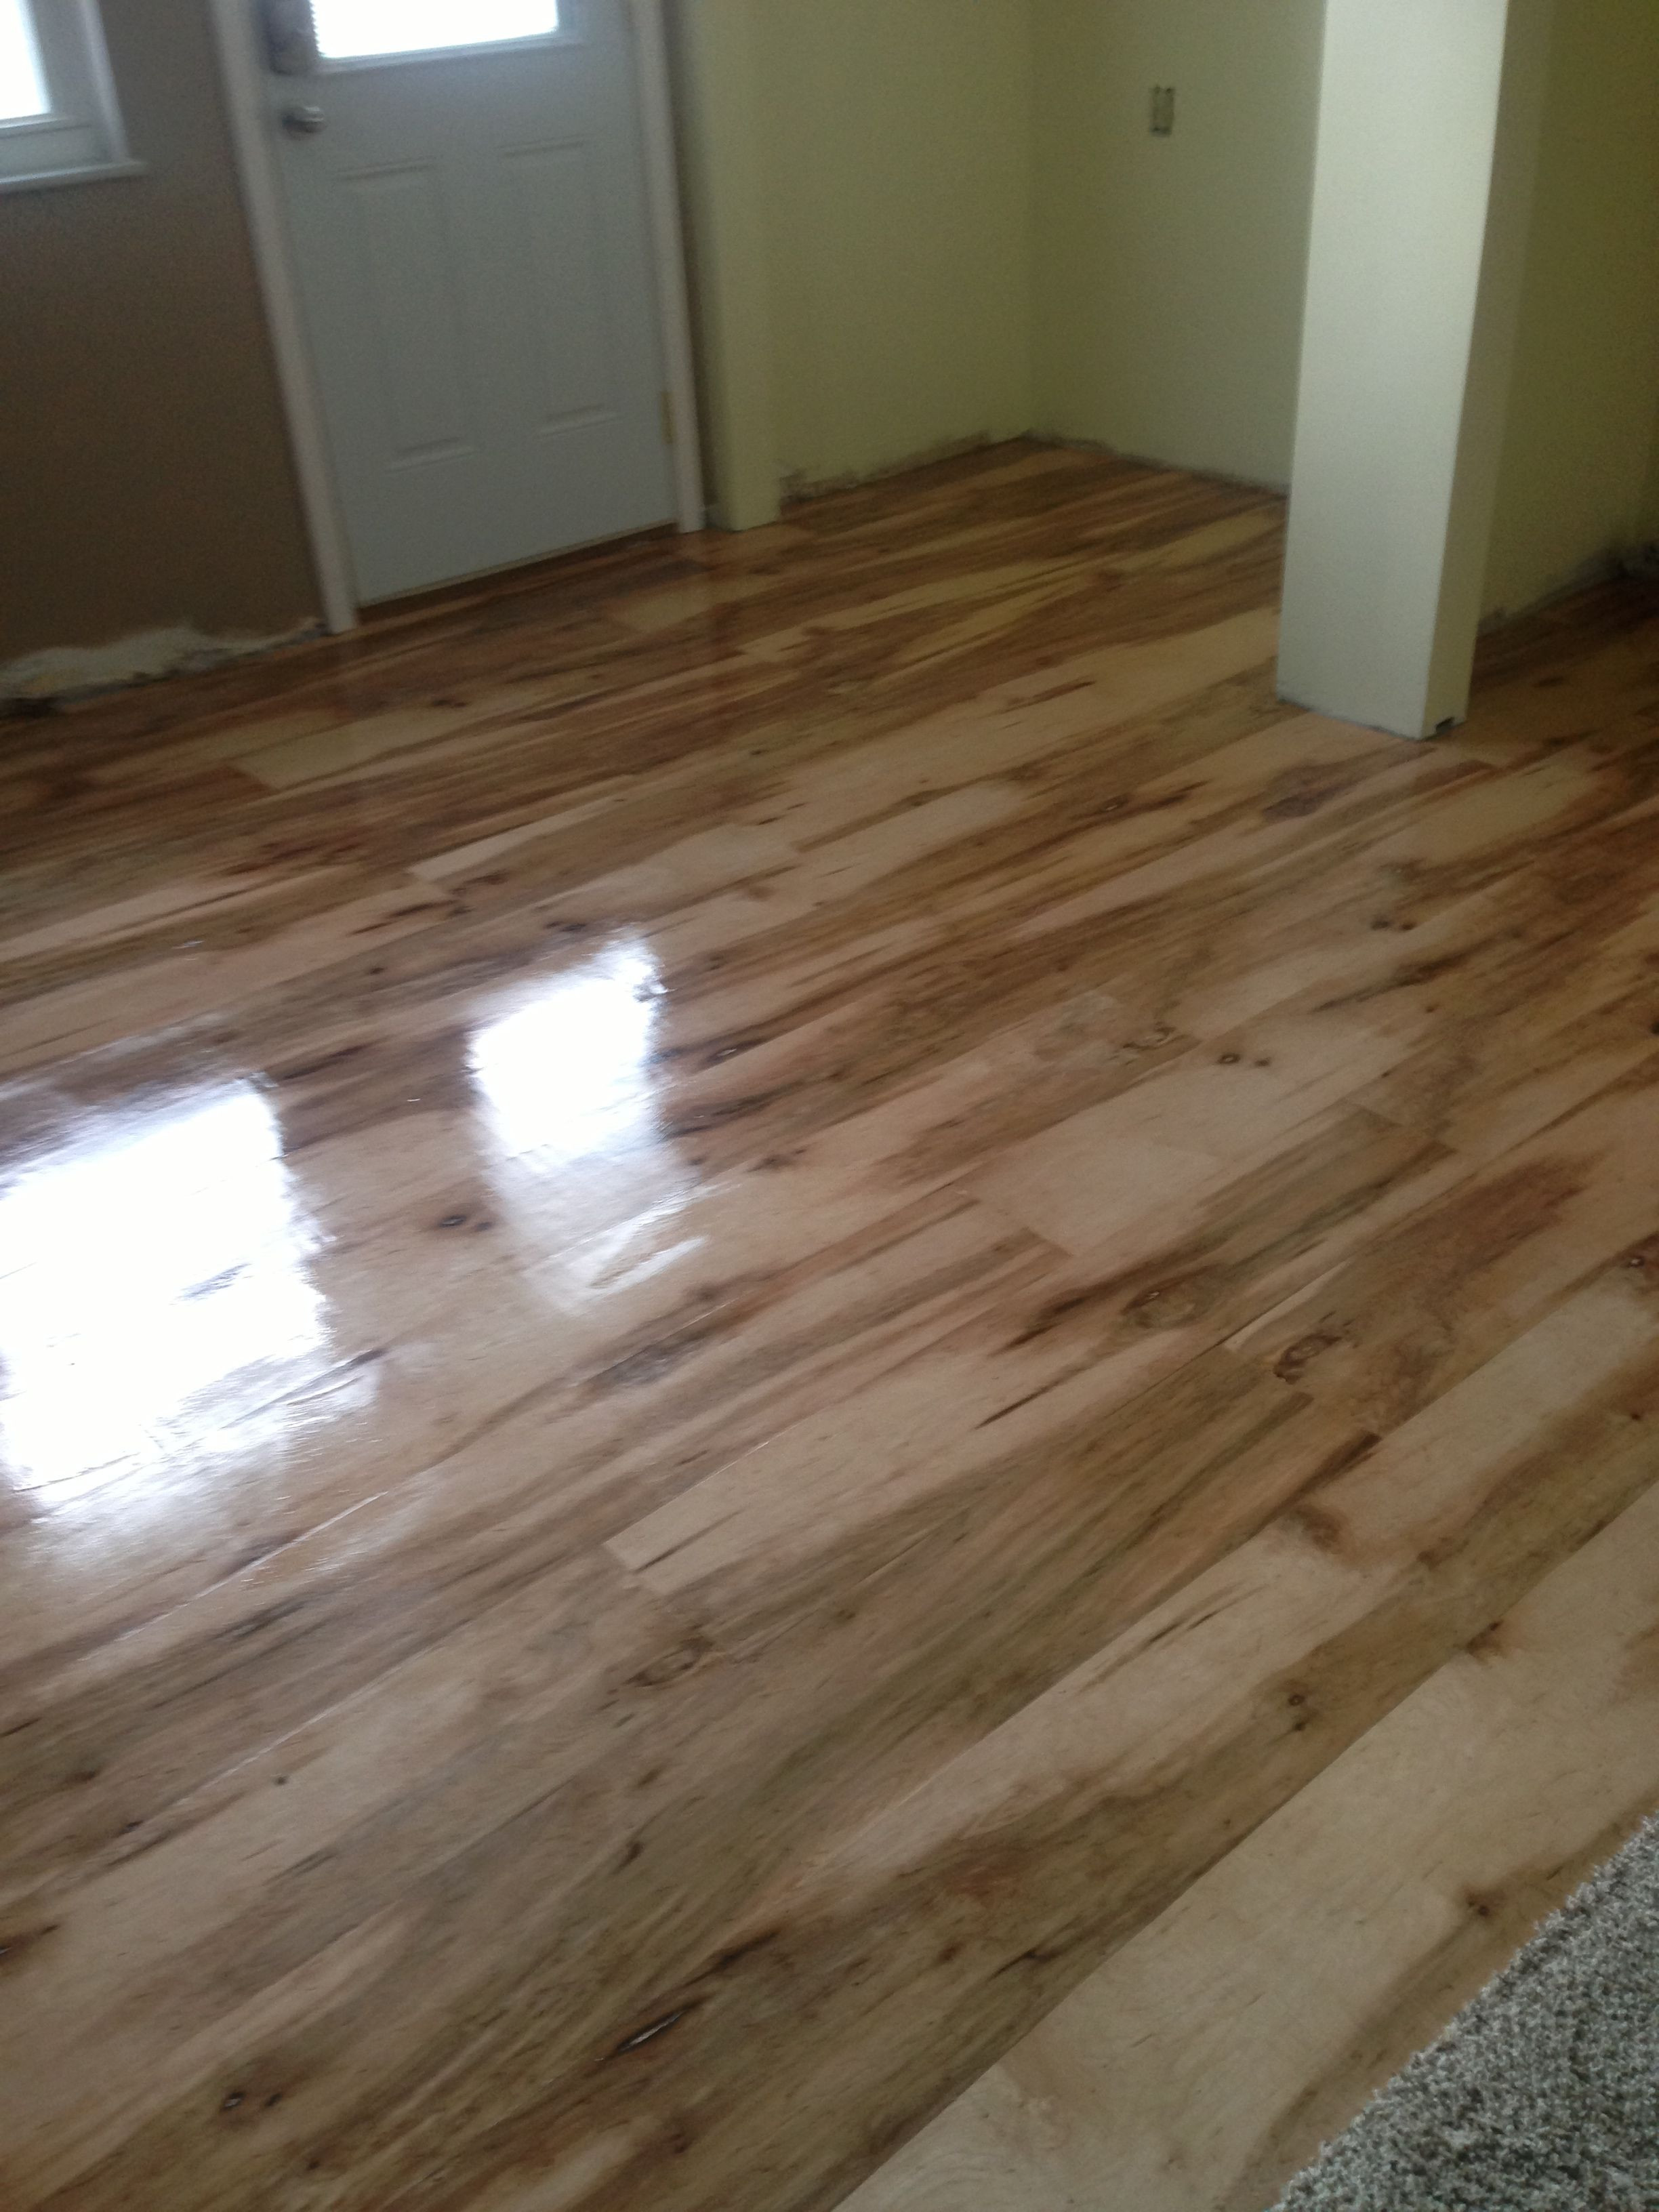 ss hardwood flooring of hardwood floor estimate floor plan ideas throughout hardwood floor estimate the final finish of the plywood floor love only cost 100 00